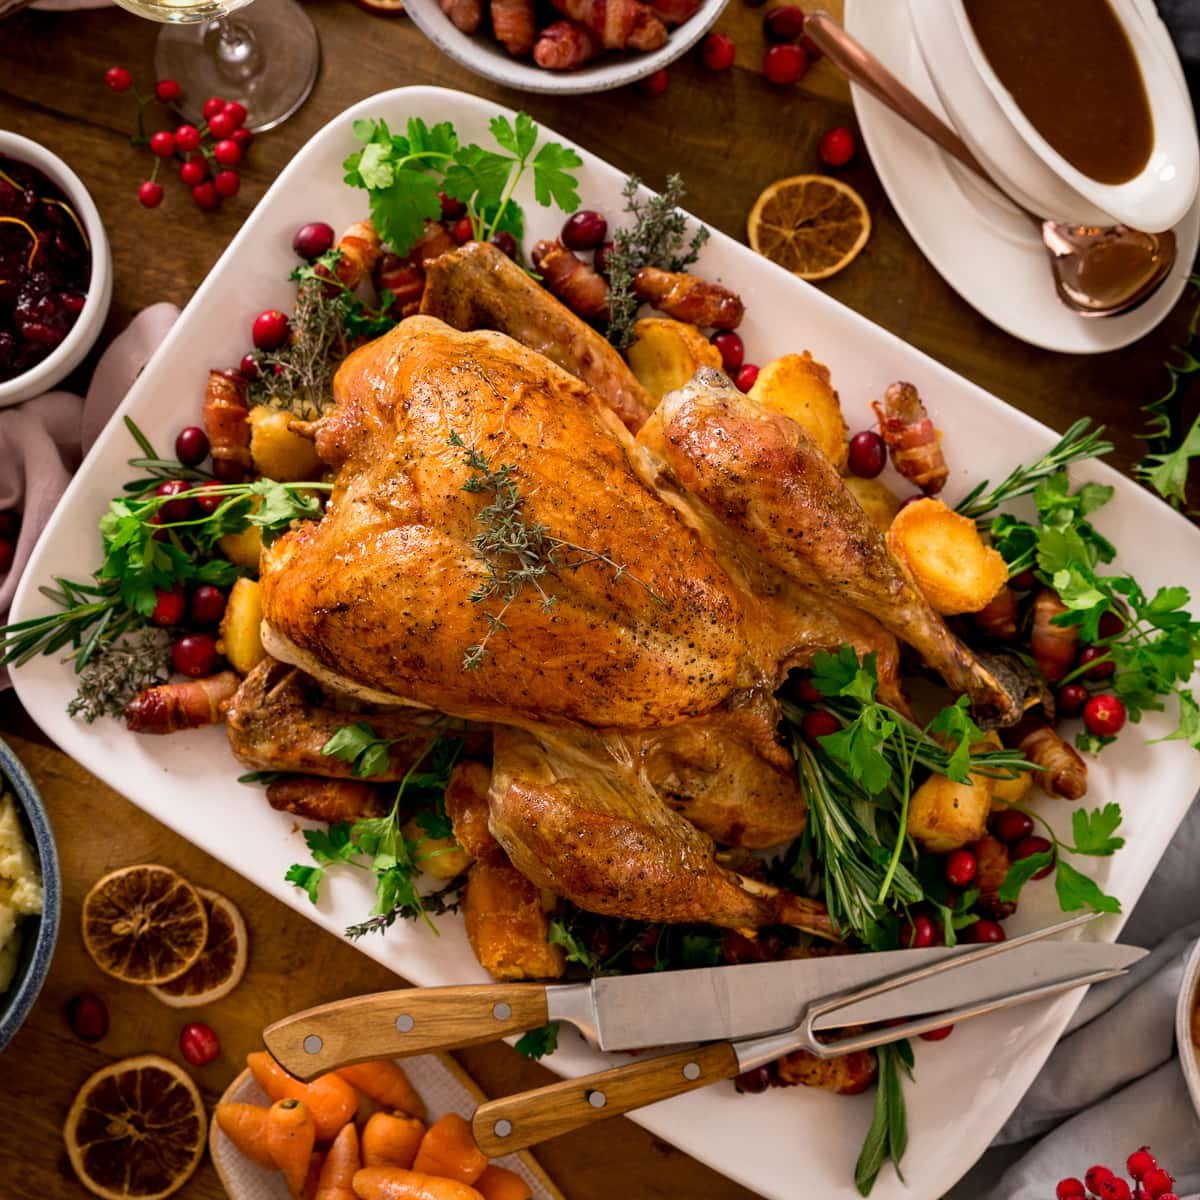 Roast turkey on a white plate surrounding by garnishings of herbs, cranberries and Christmas dinner side dishes